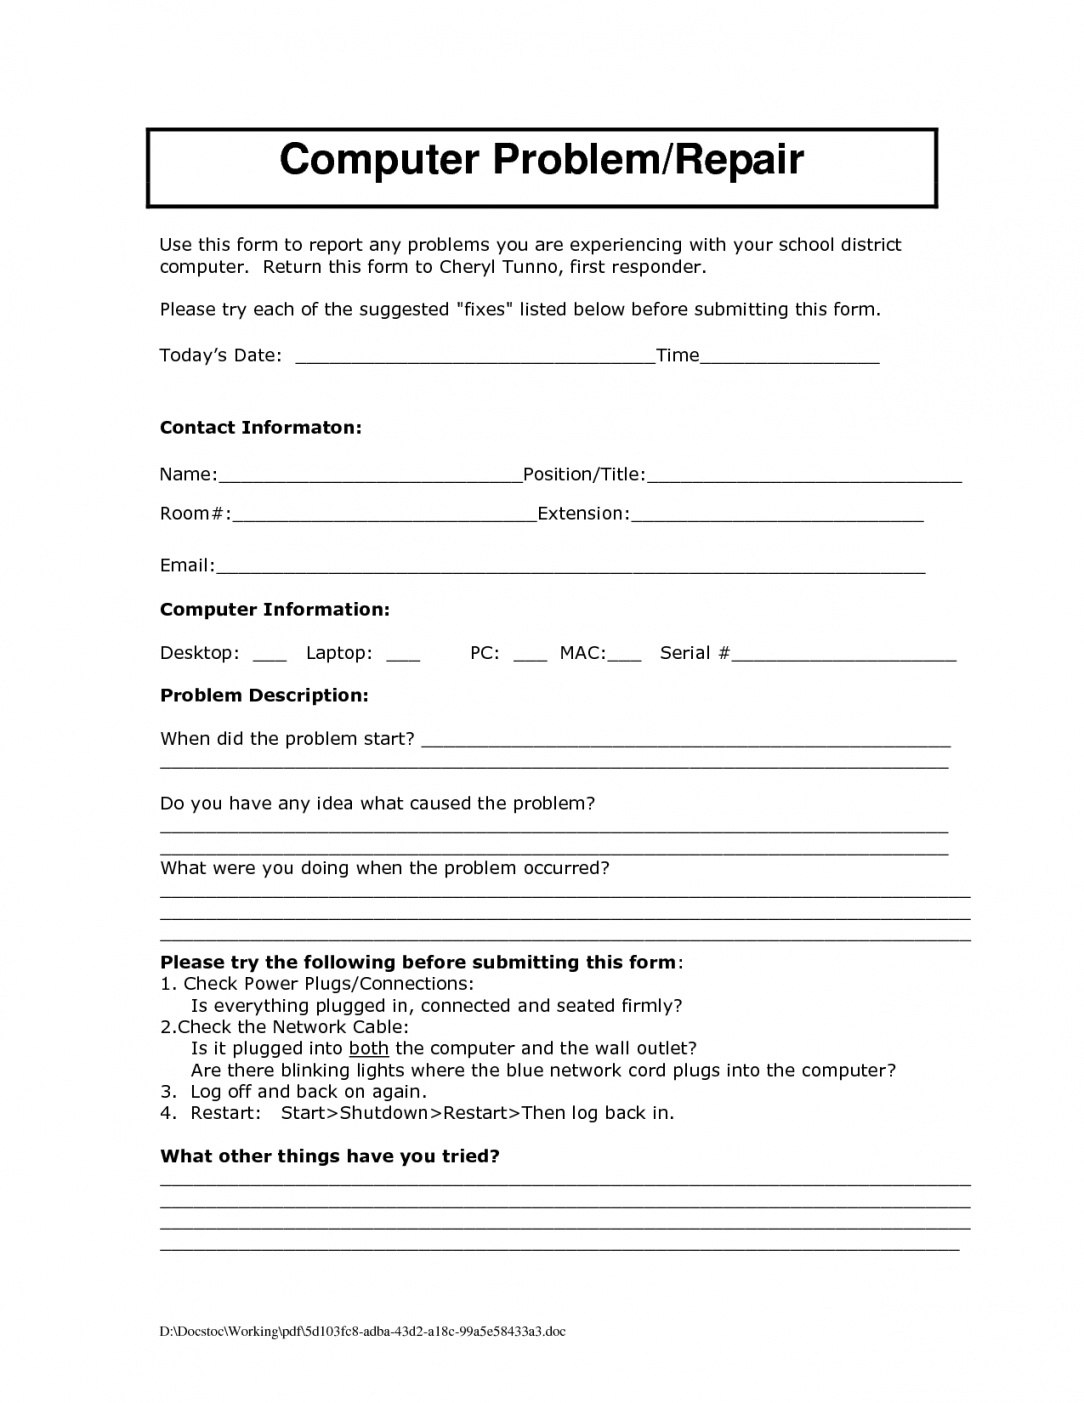 Computer Maintenance Report Template For Computer Maintenance Report Template